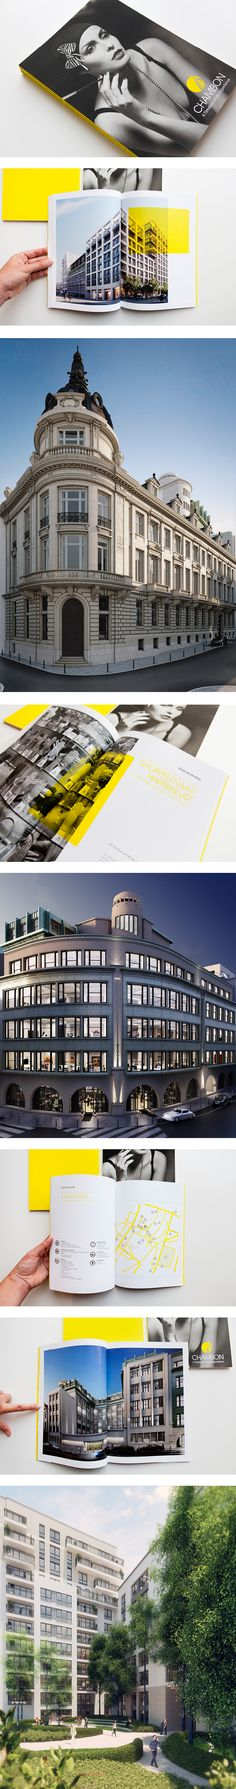 Concept, brochure and visuals for Chambon, a prestigious residential and offices project in the heart of Brussels. Portfolio Samples, Real Estate Branding, Brochure Design Inspiration, Catalog Design, Real Estate Marketing, Layout Design, Architecture, Duo Tone, Brussels